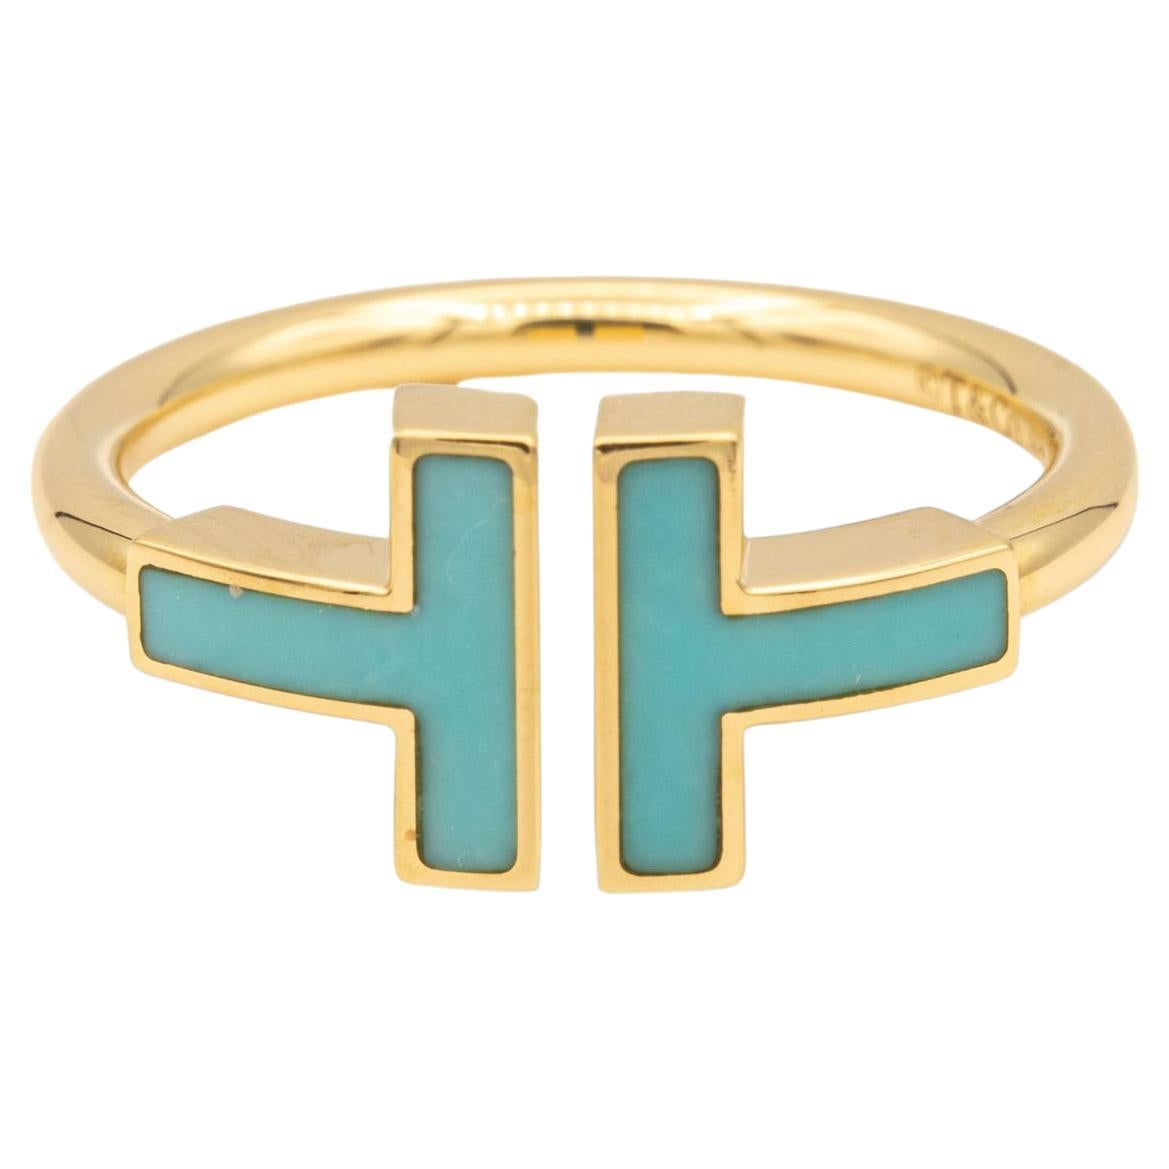 Tiffany & Co. T Wire Turquoise Ring in 18 Karat Gold